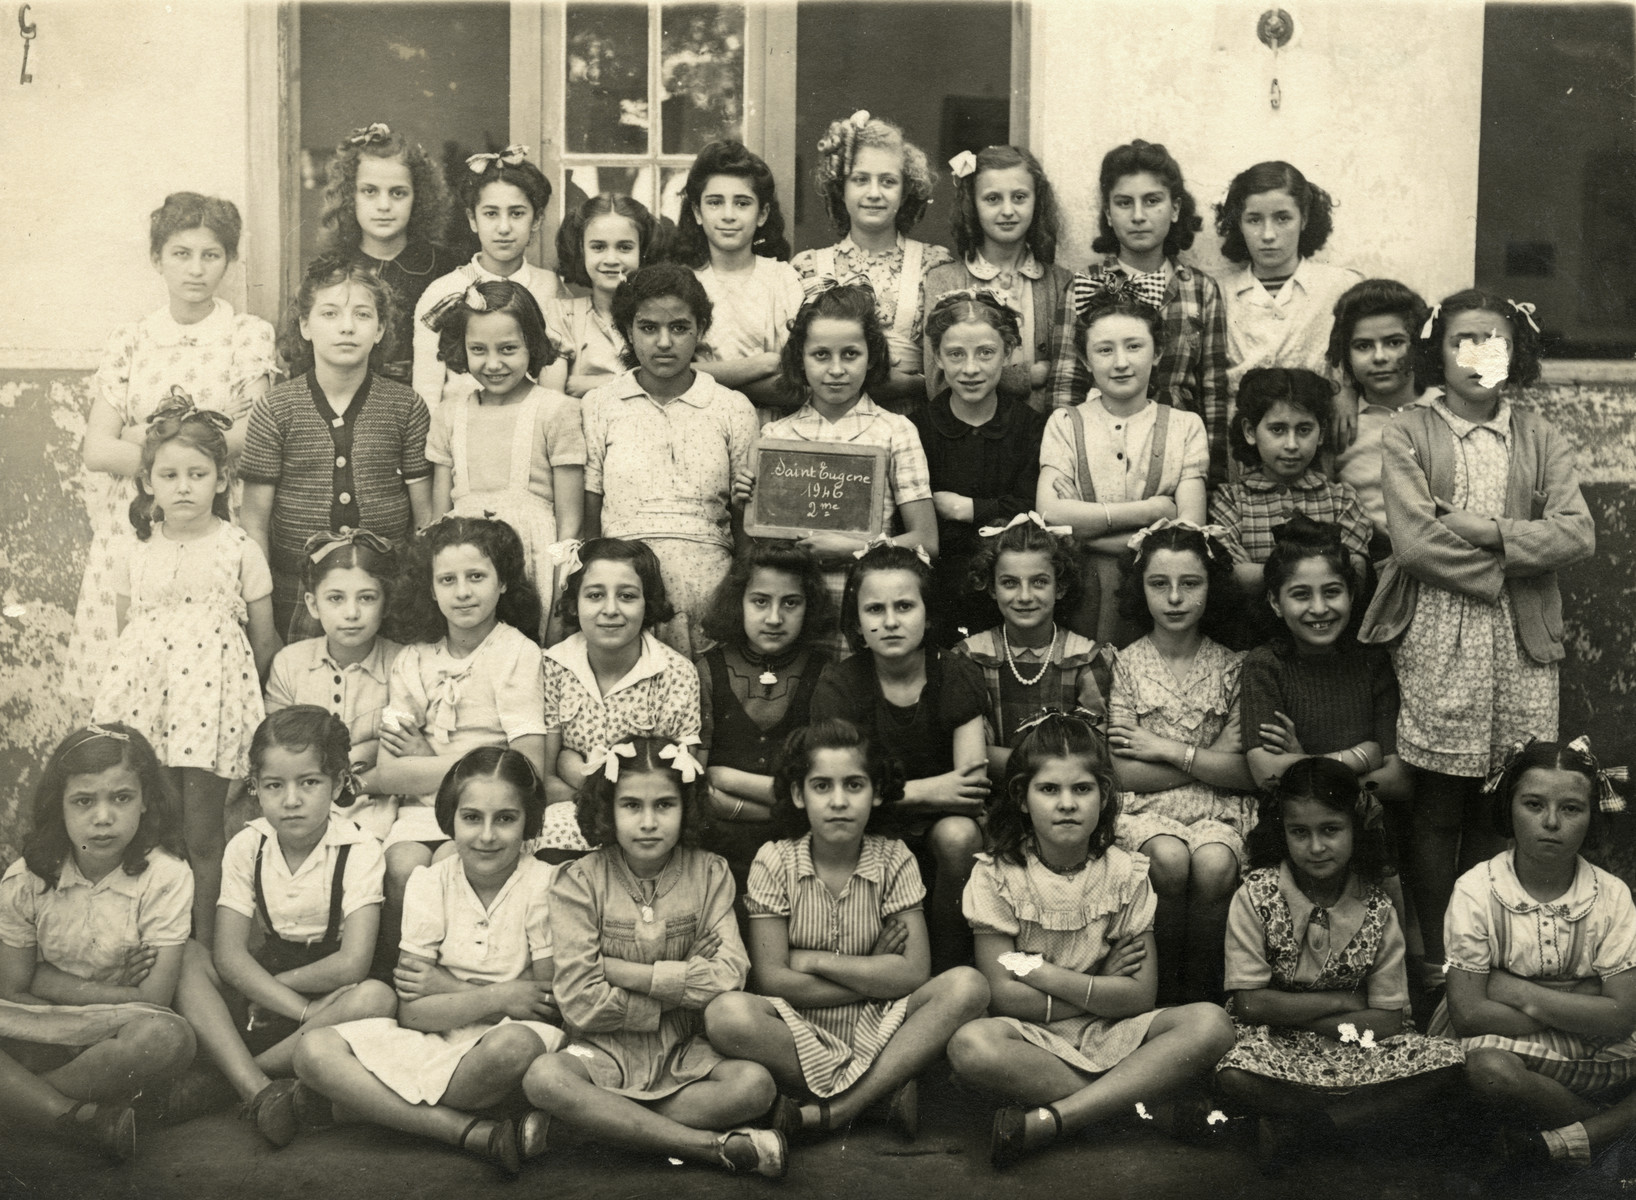 Class photo of young girls a school in Saint Eugene, Algeria.  Margalith Ghozlan is pictured as the first child in the second row.